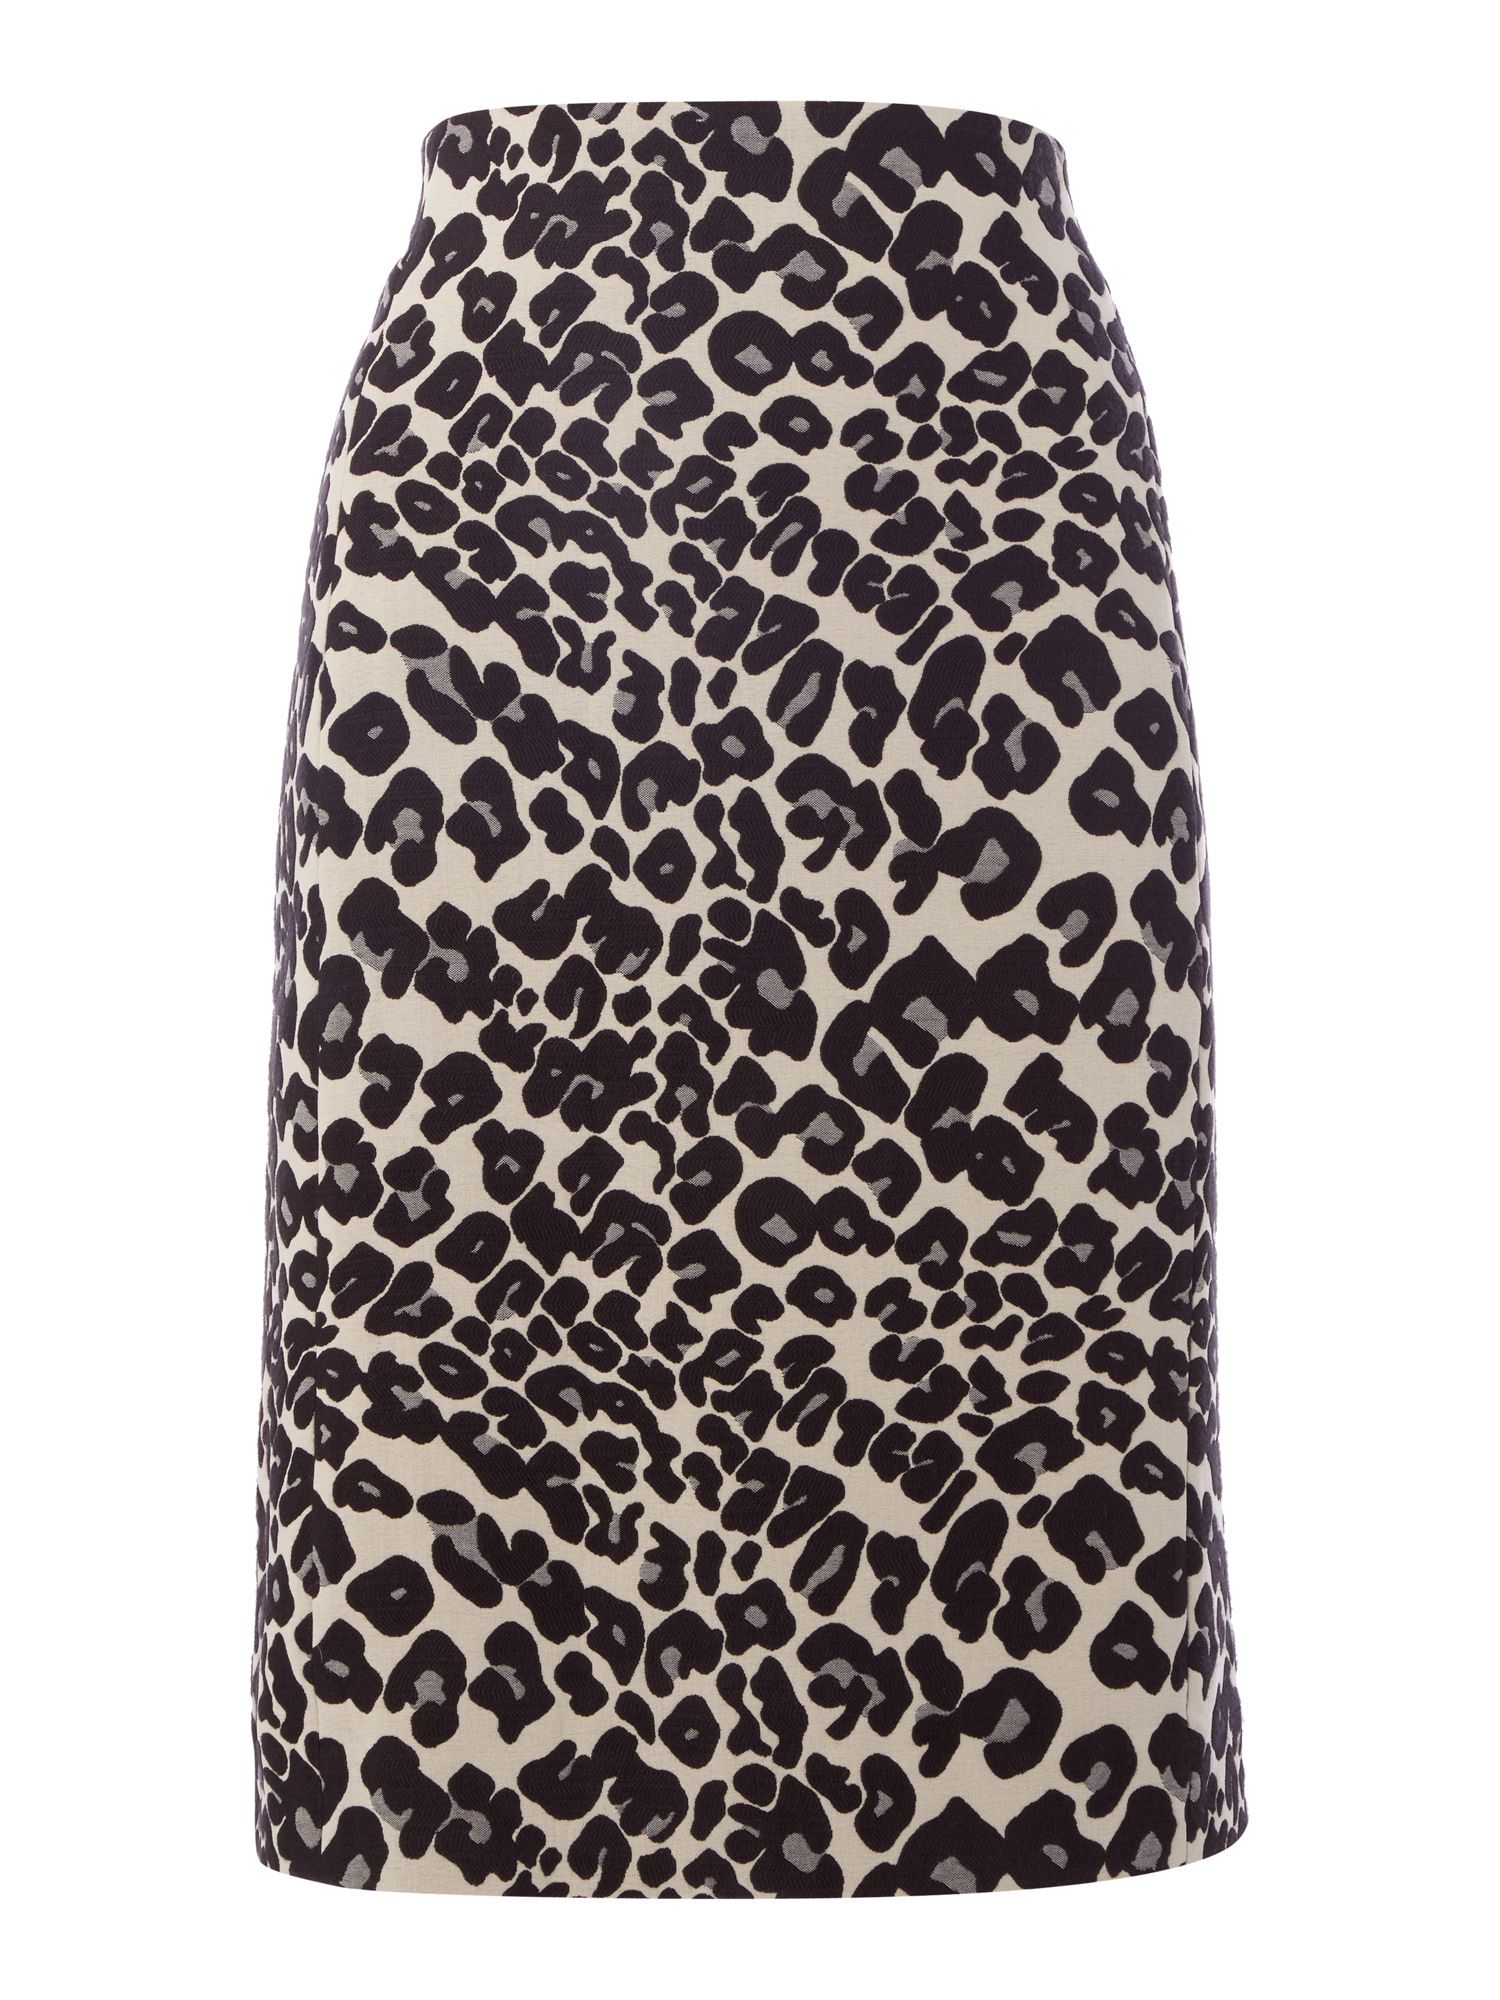 InWear Animal print skirt Leopard